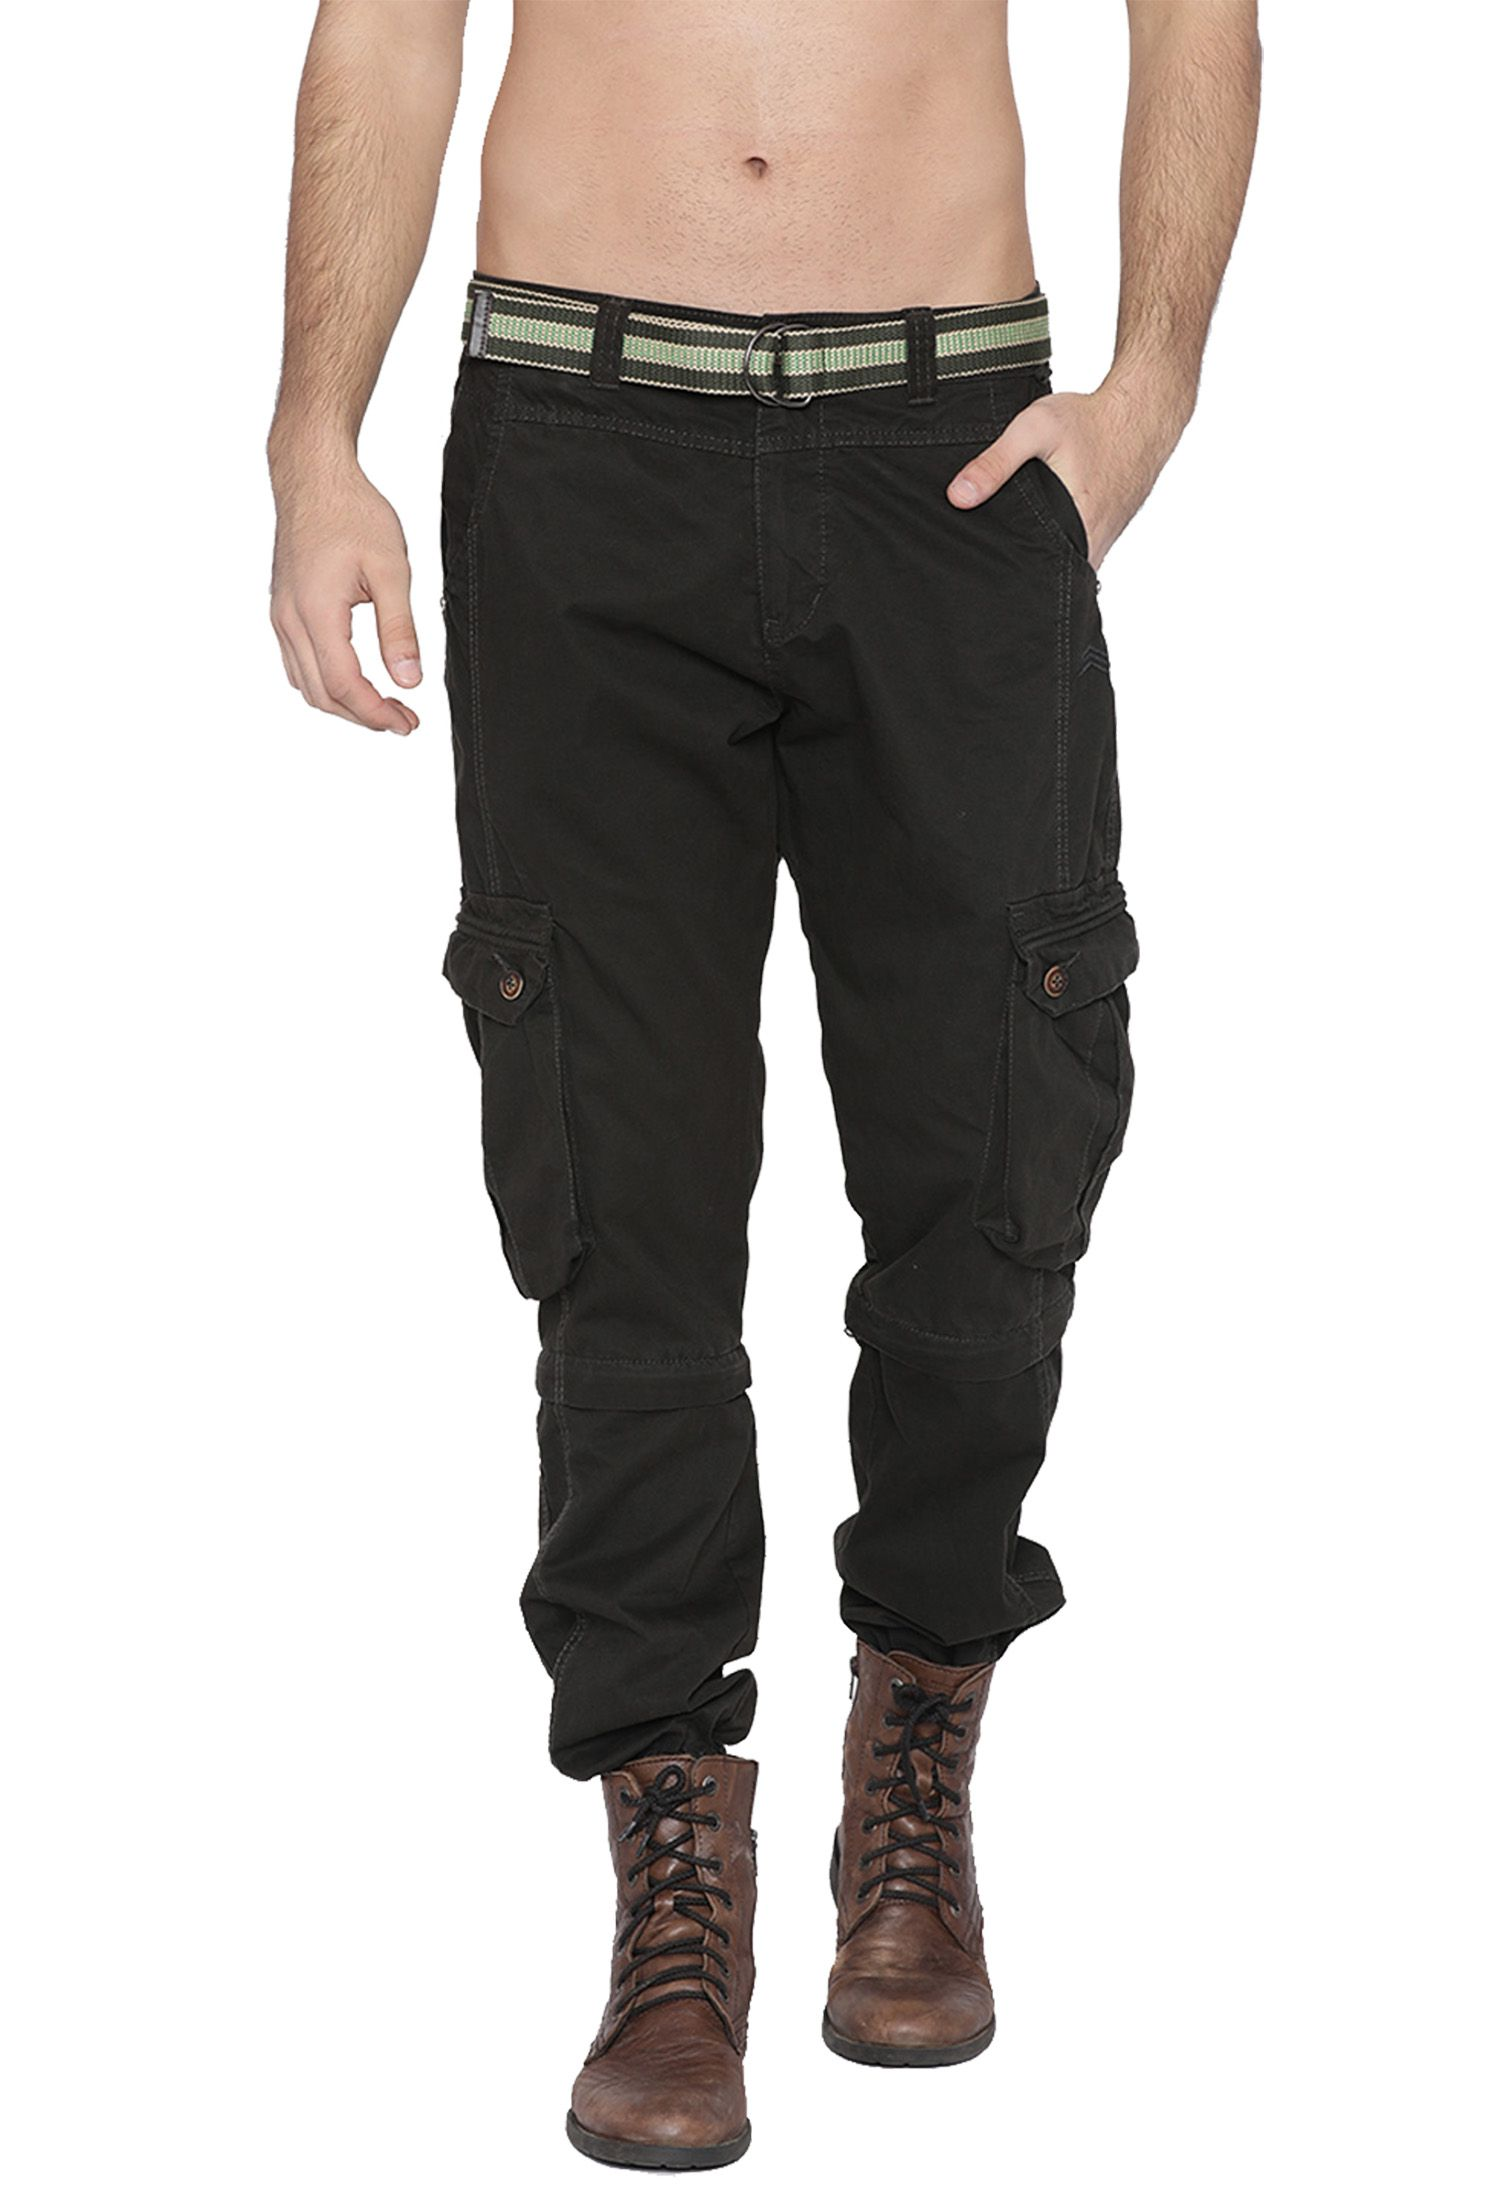 FIFTY TWO Olive Green Regular -Fit Flat Joggers